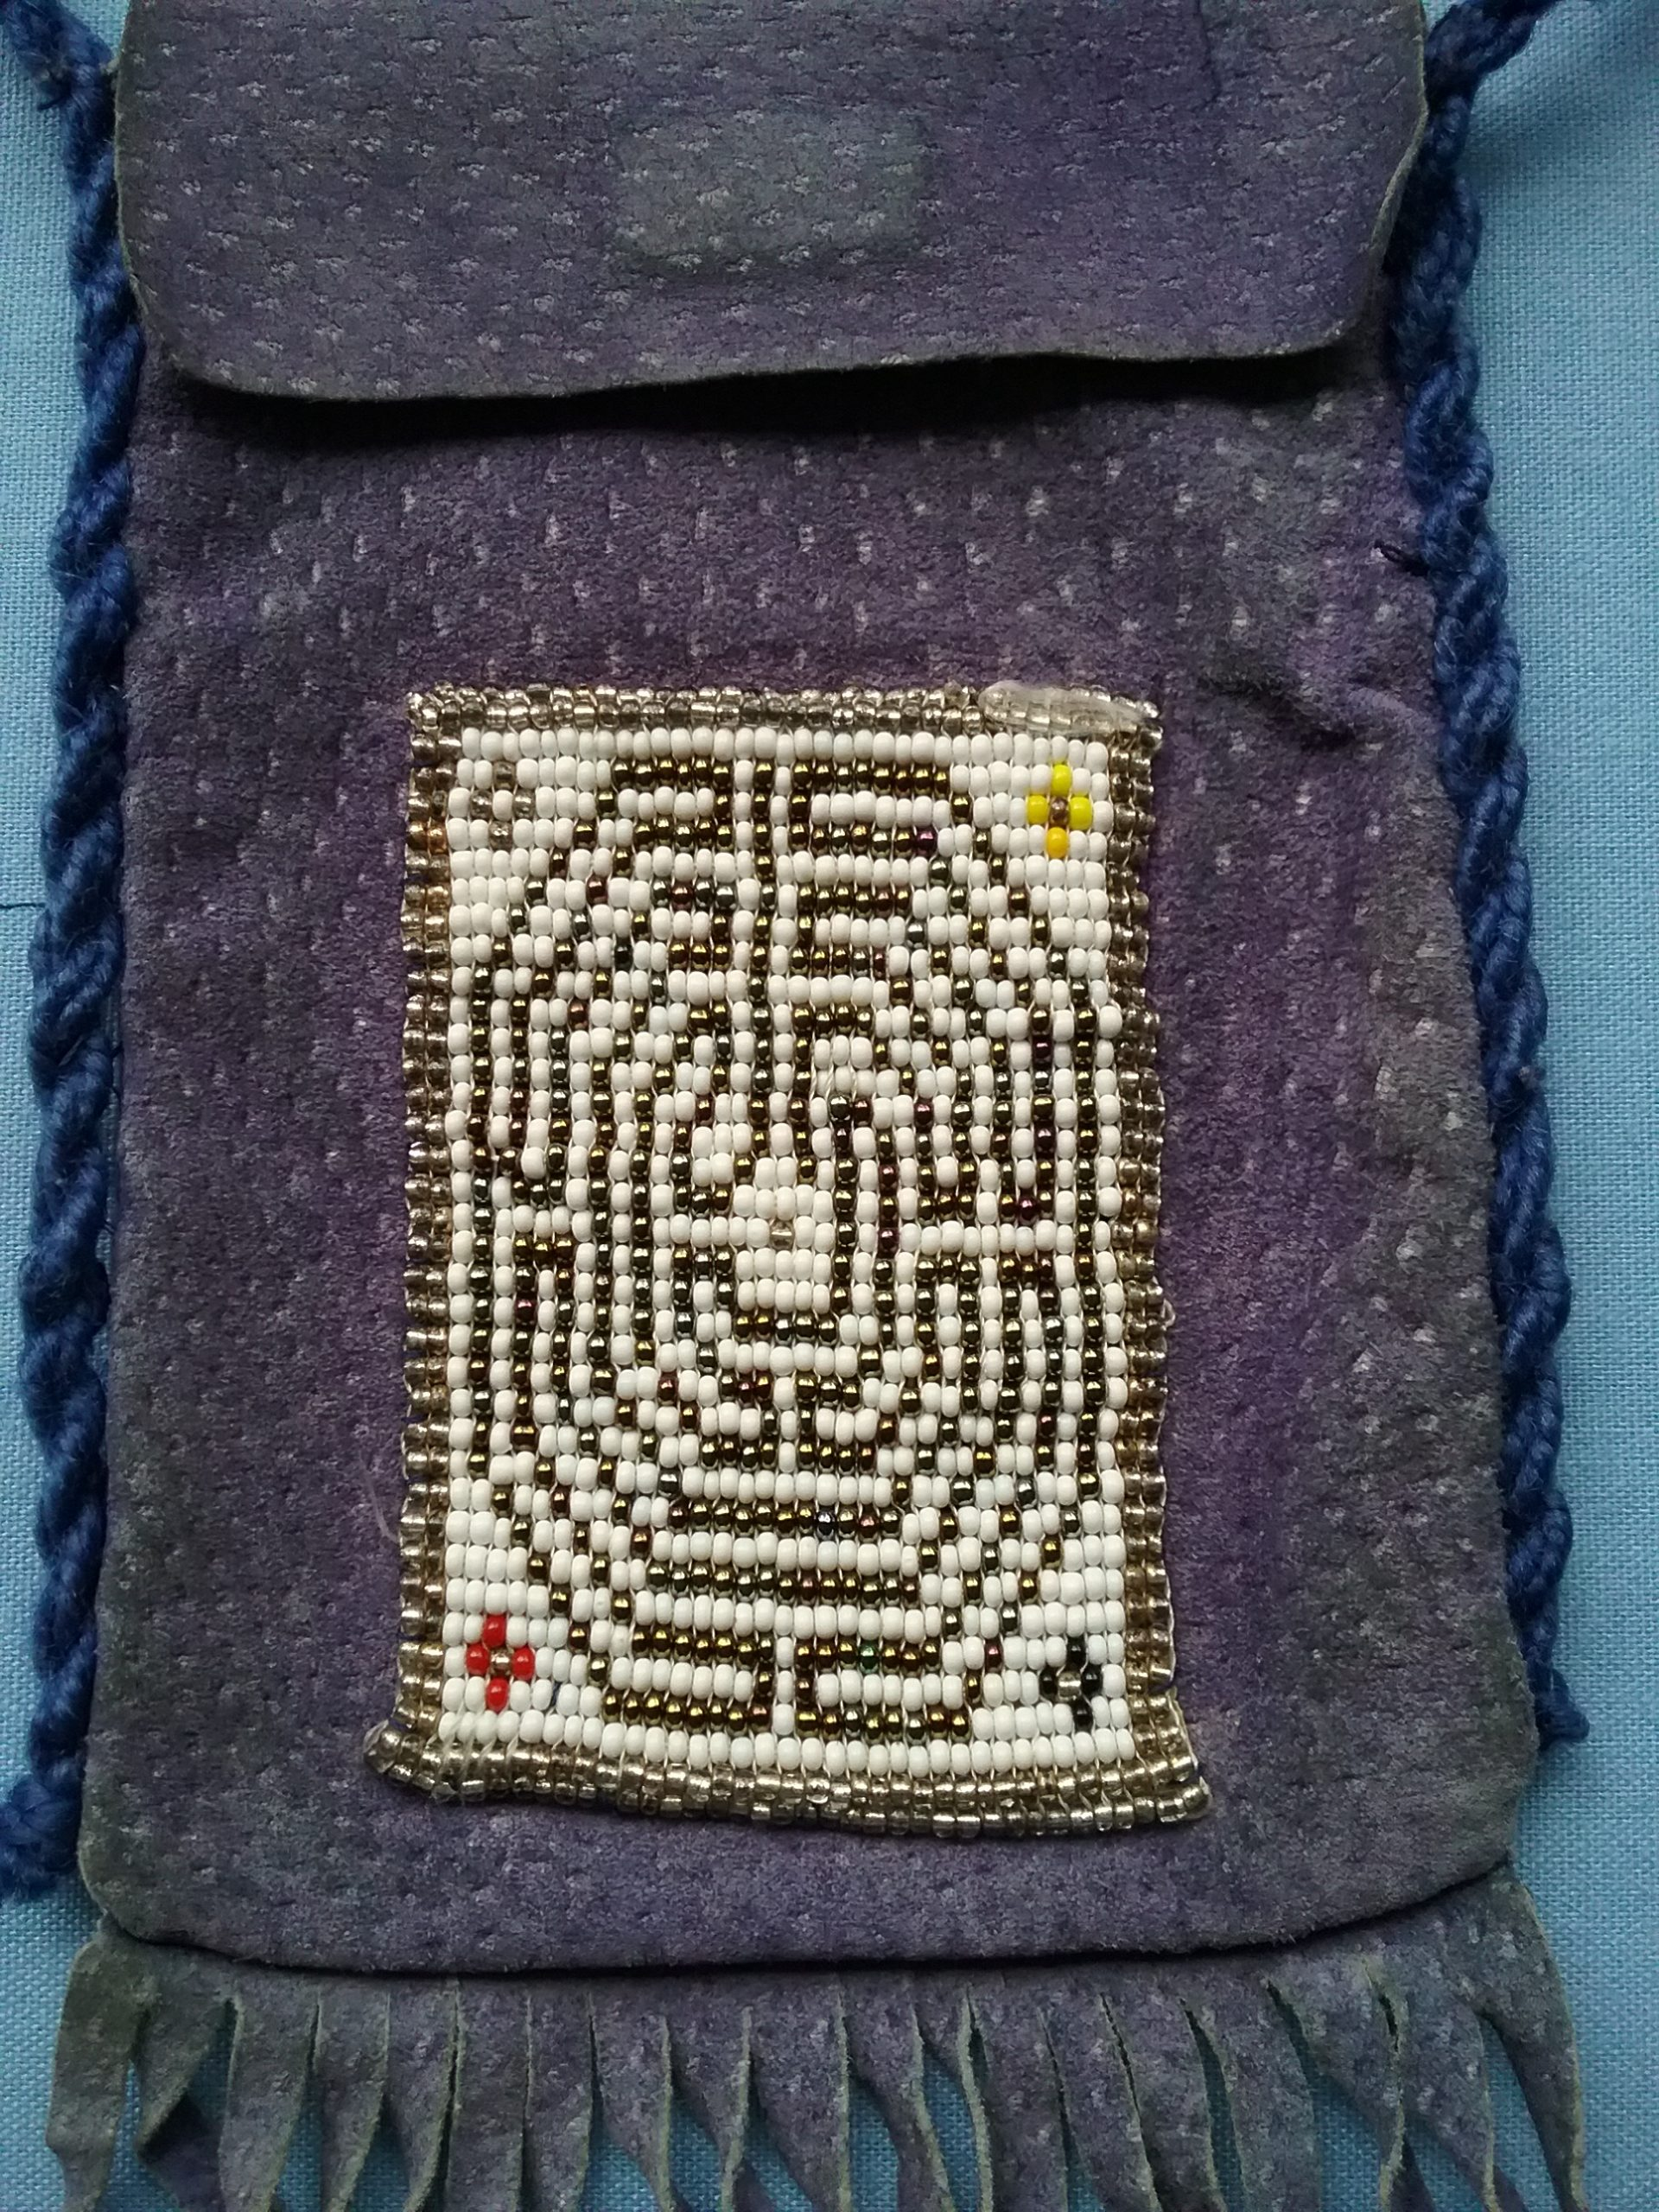 Closeup of the Baby Chartres design in Sister Carol Schmit's small beaded bag. Note the four colored crosses in the corners. On loan from Sister Carol Schmit, OSF.